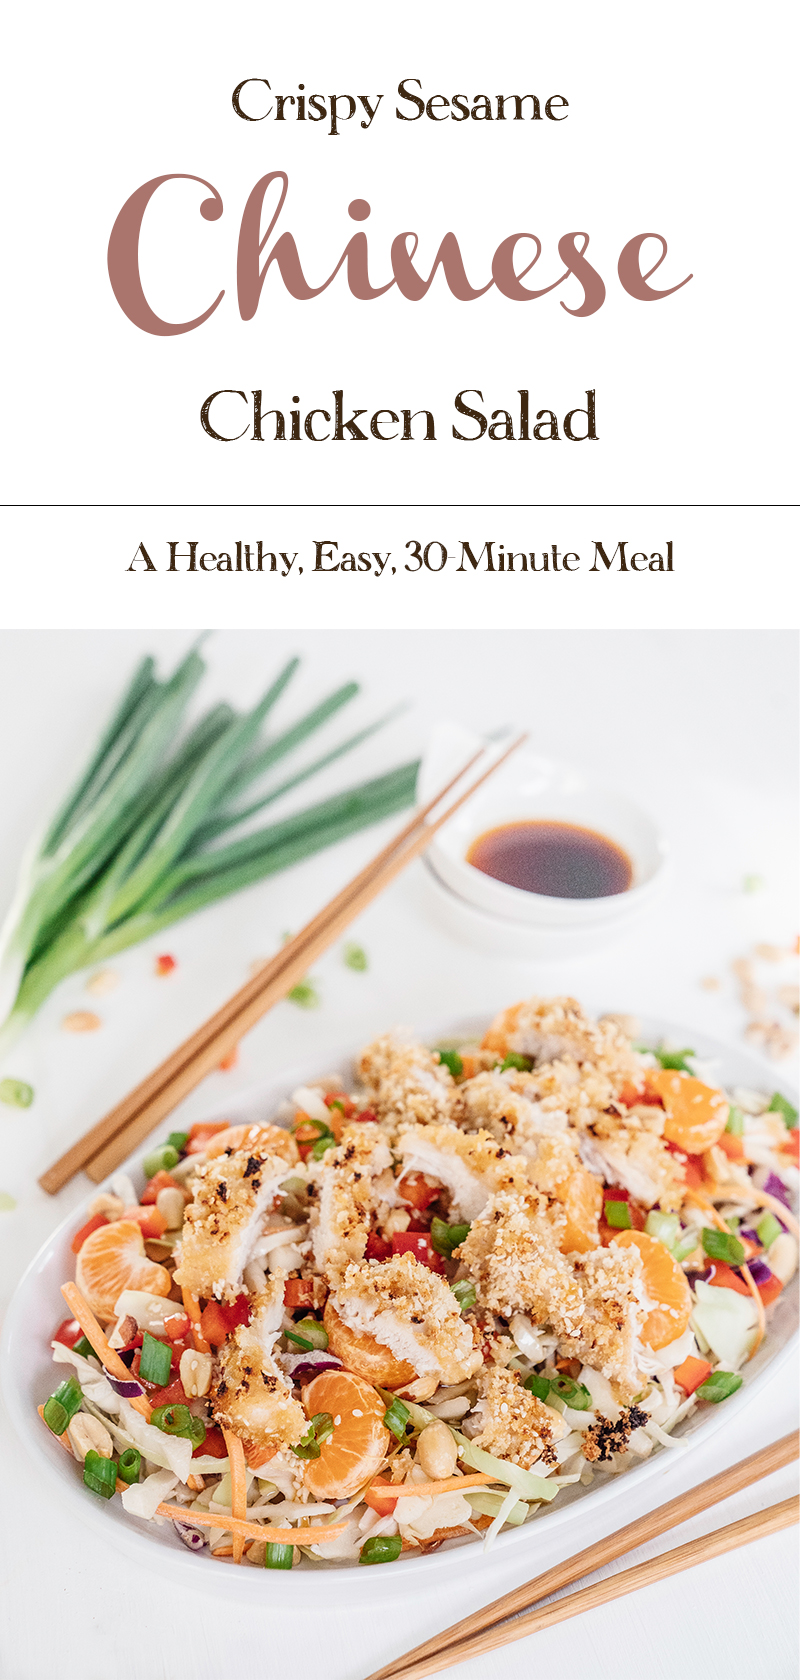 Healthy-30-Minute-Crispy-Sesame-Chinese-Chicken-Salad